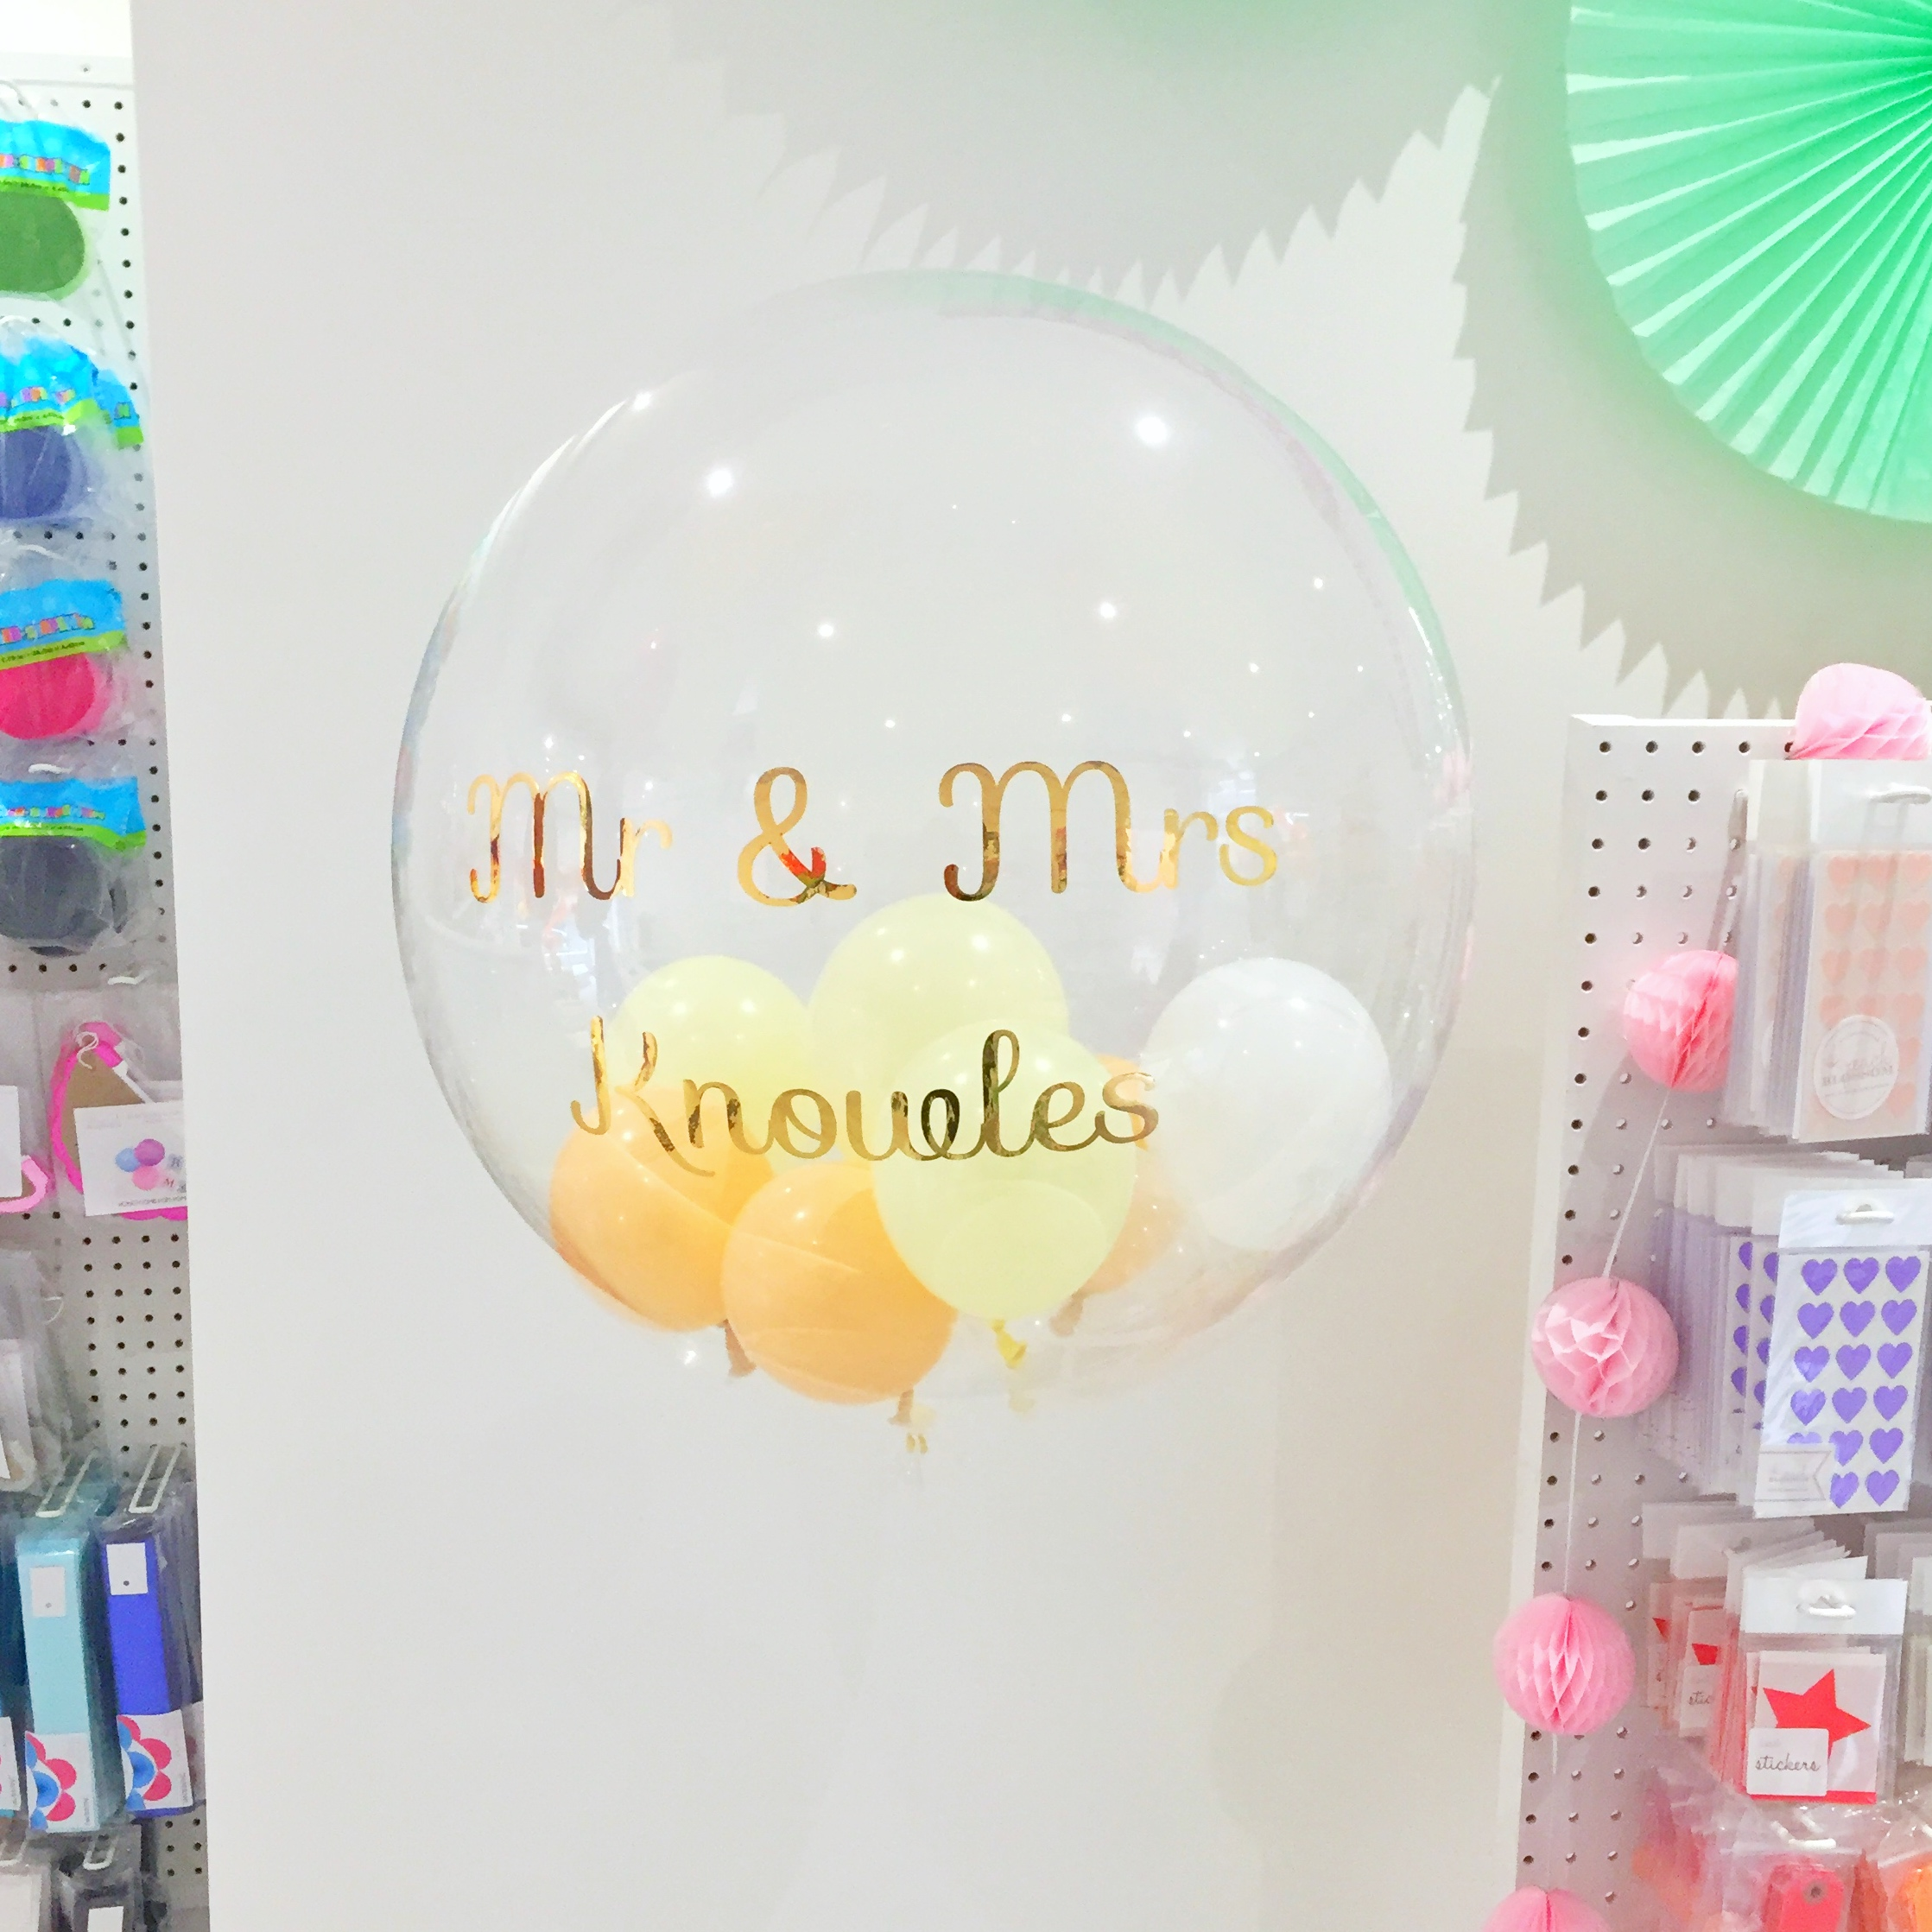 Where to order beautiful balloons